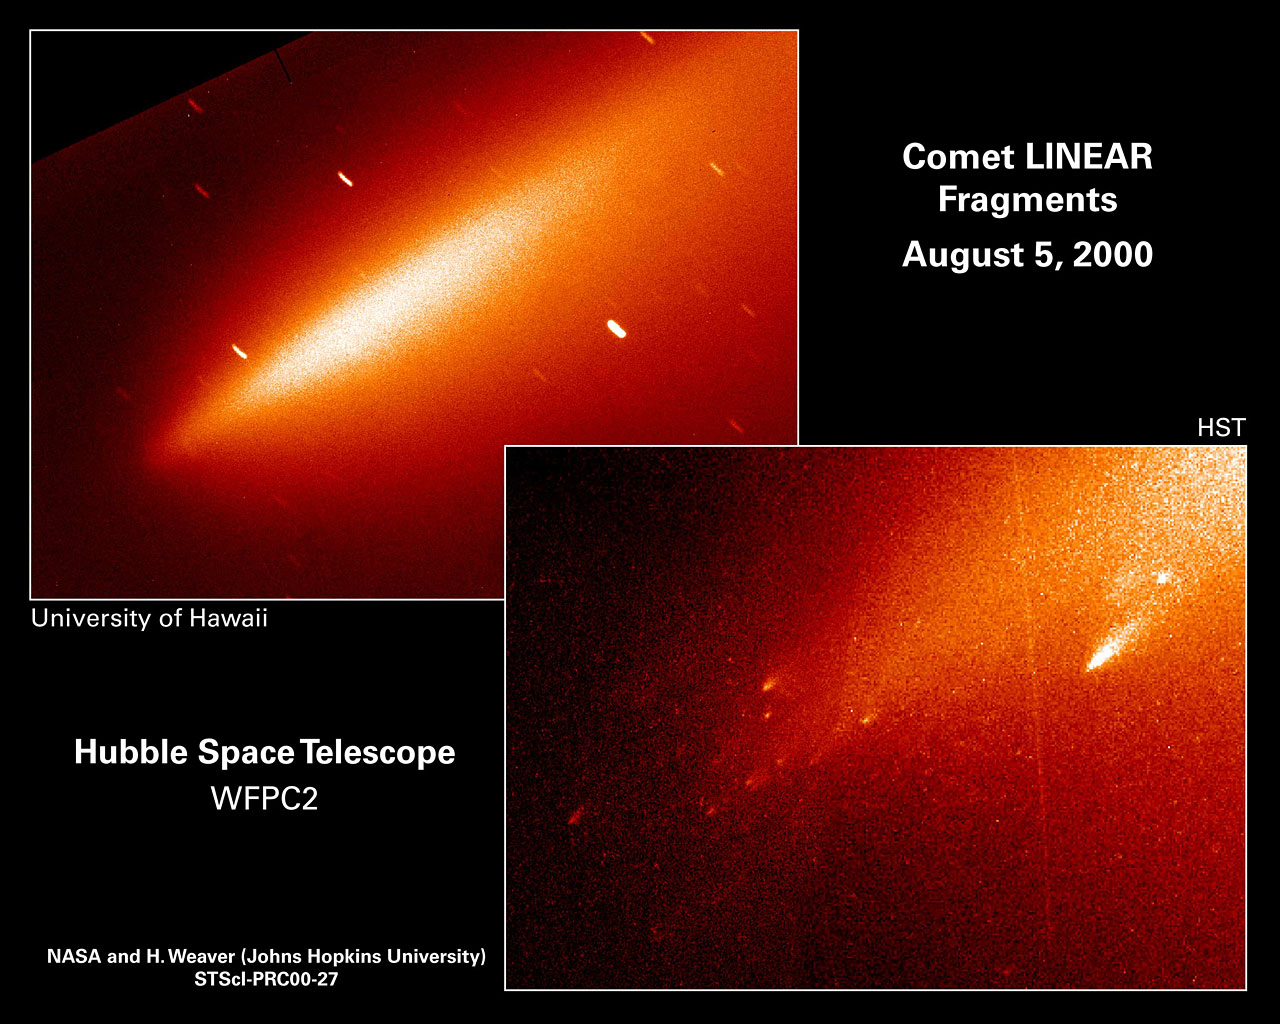 Comet Linear Fragments